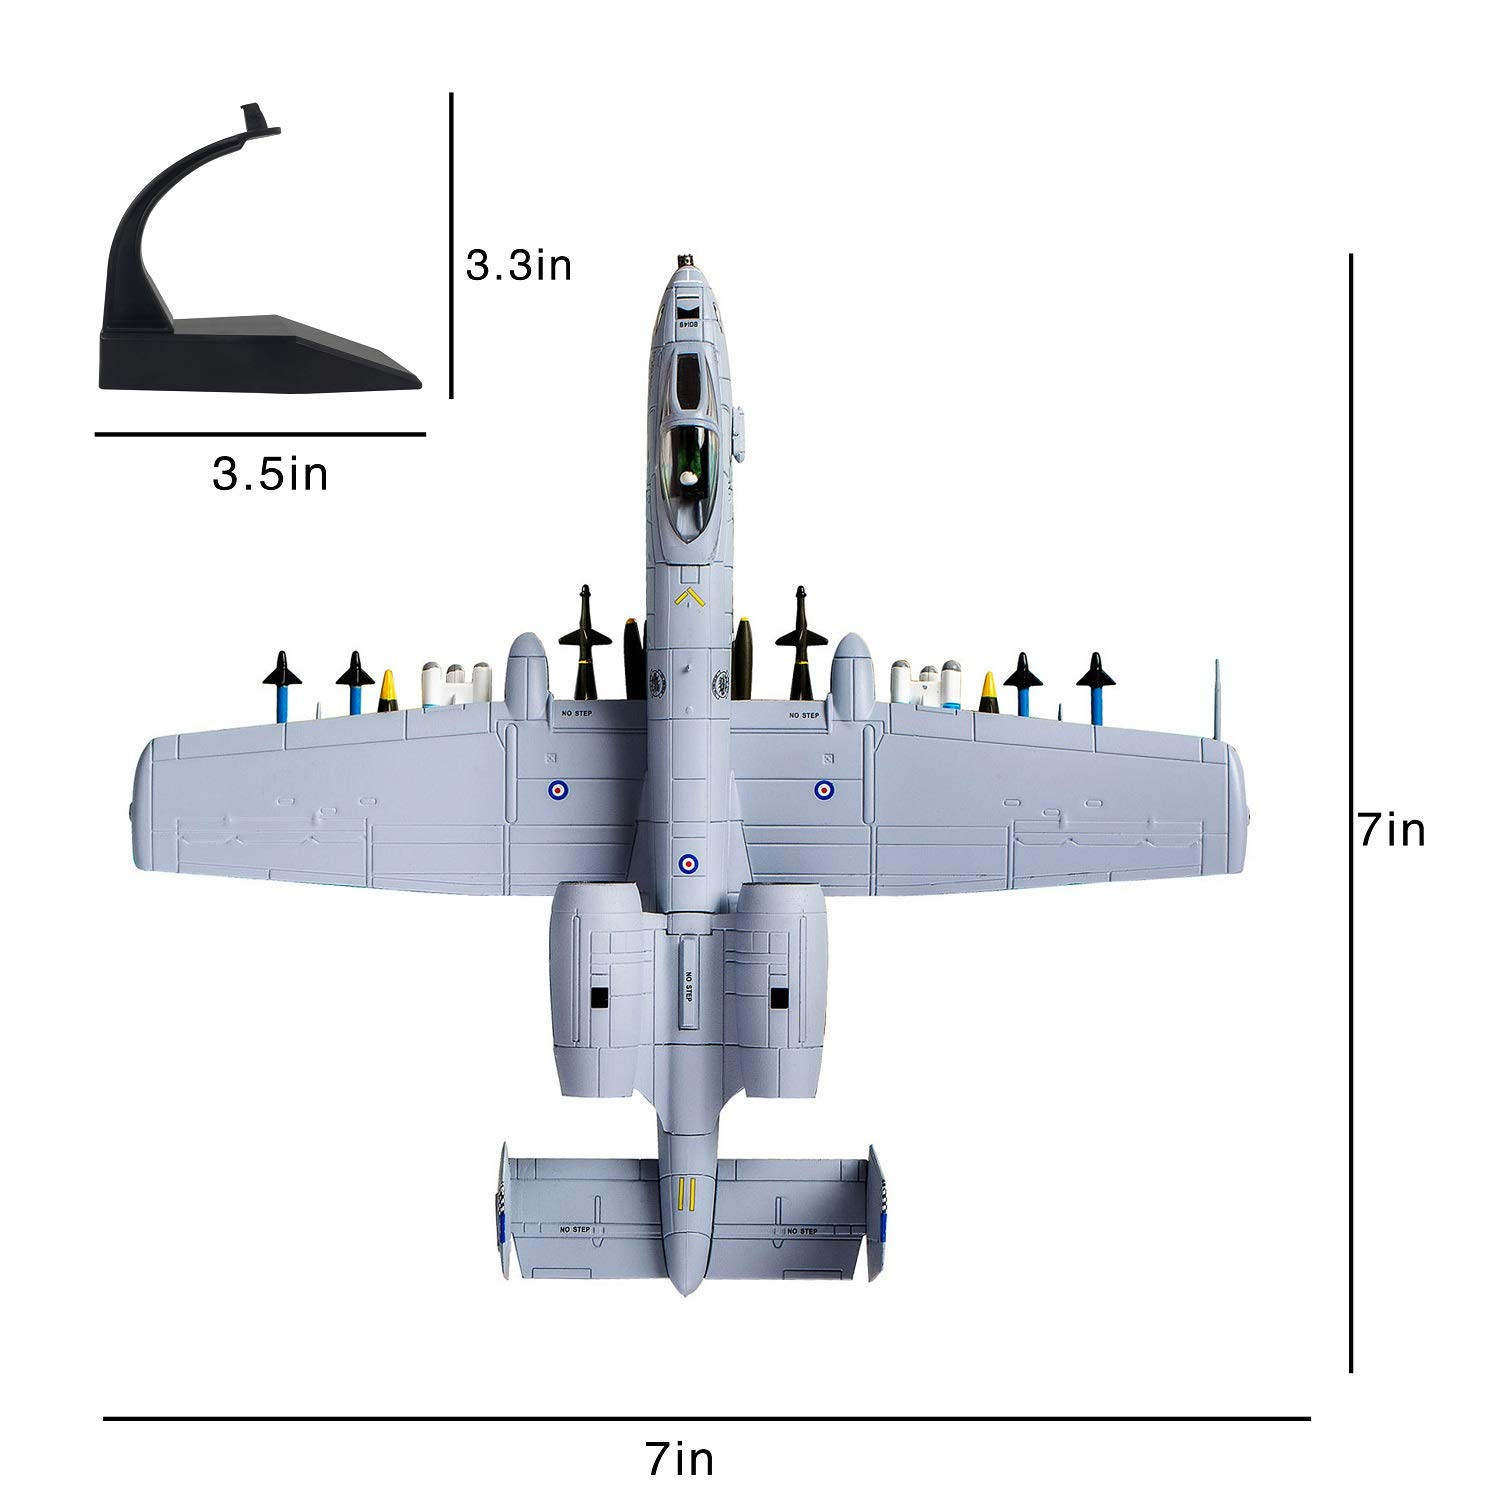 1/100 A-10 Thunderbolt II Warthog Attack Plane(Painted Version) Metal Fighter Military Model Diecast Plane Model for Collection or Gift